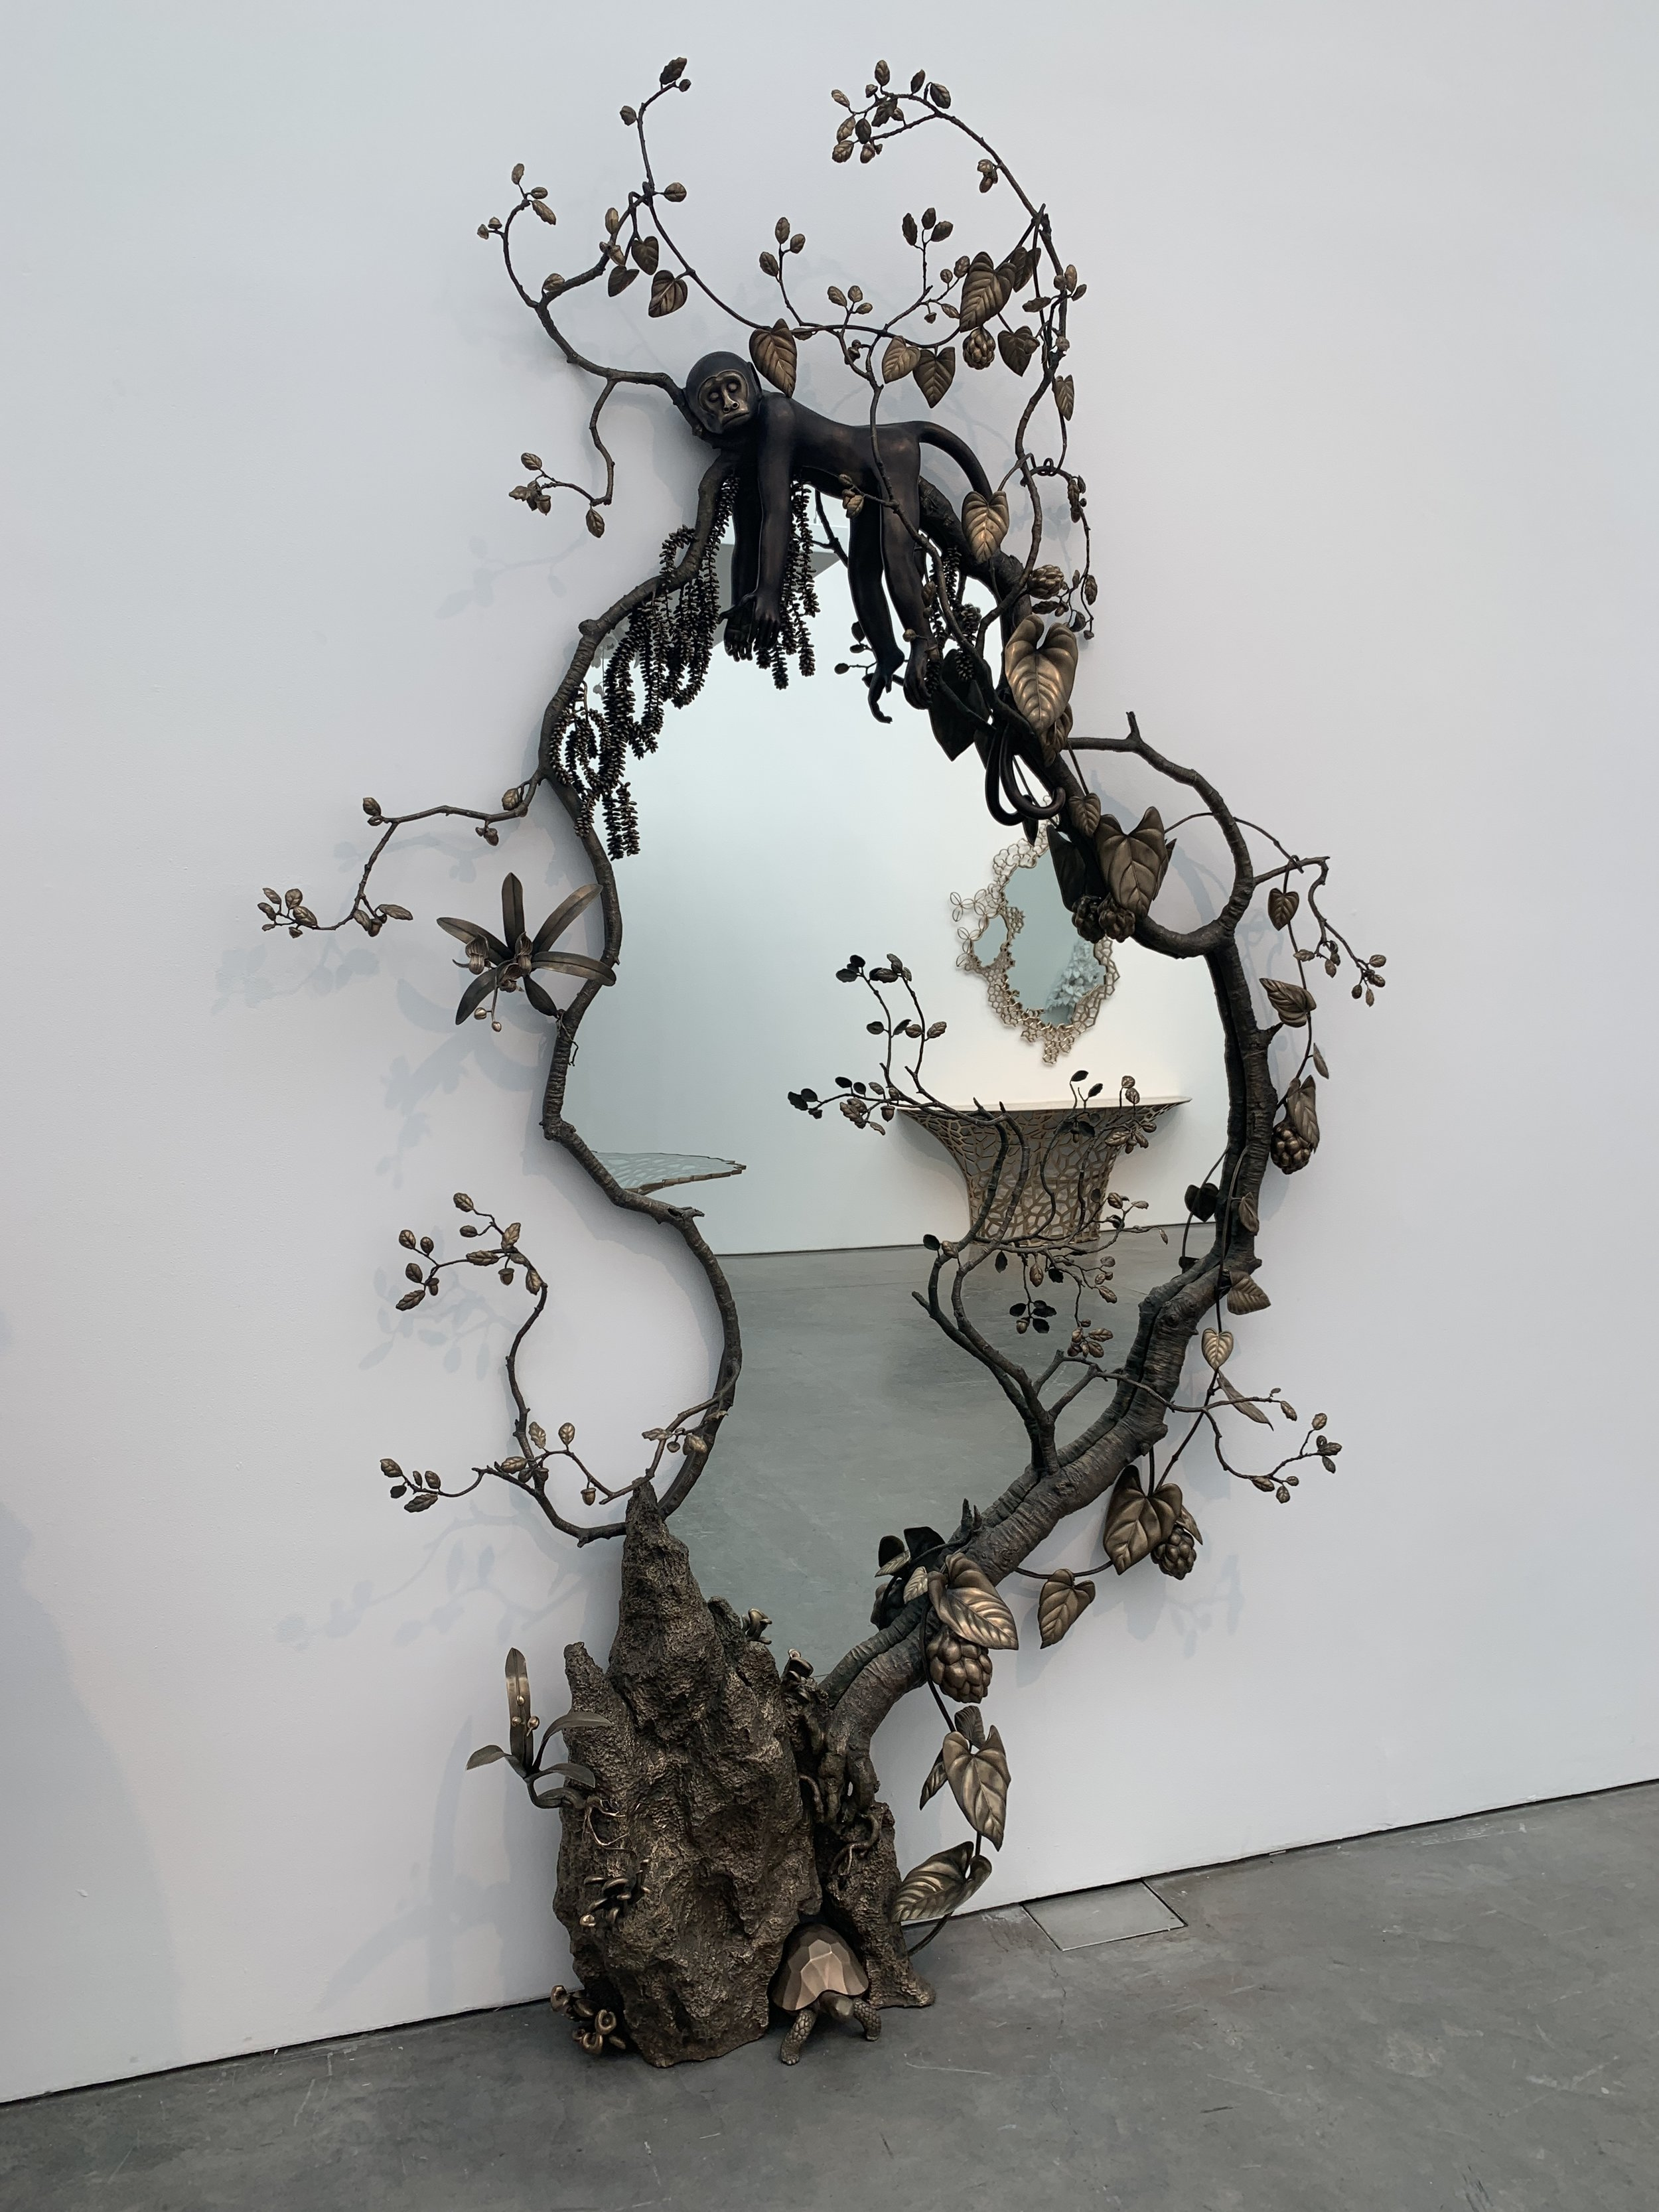 David Wiseman, Lost Valley Mirror, 2019, bronze and glass, 114 x 70 x 15 inches. Photographed by myself, as installed at the Paul Kasmin gallery.